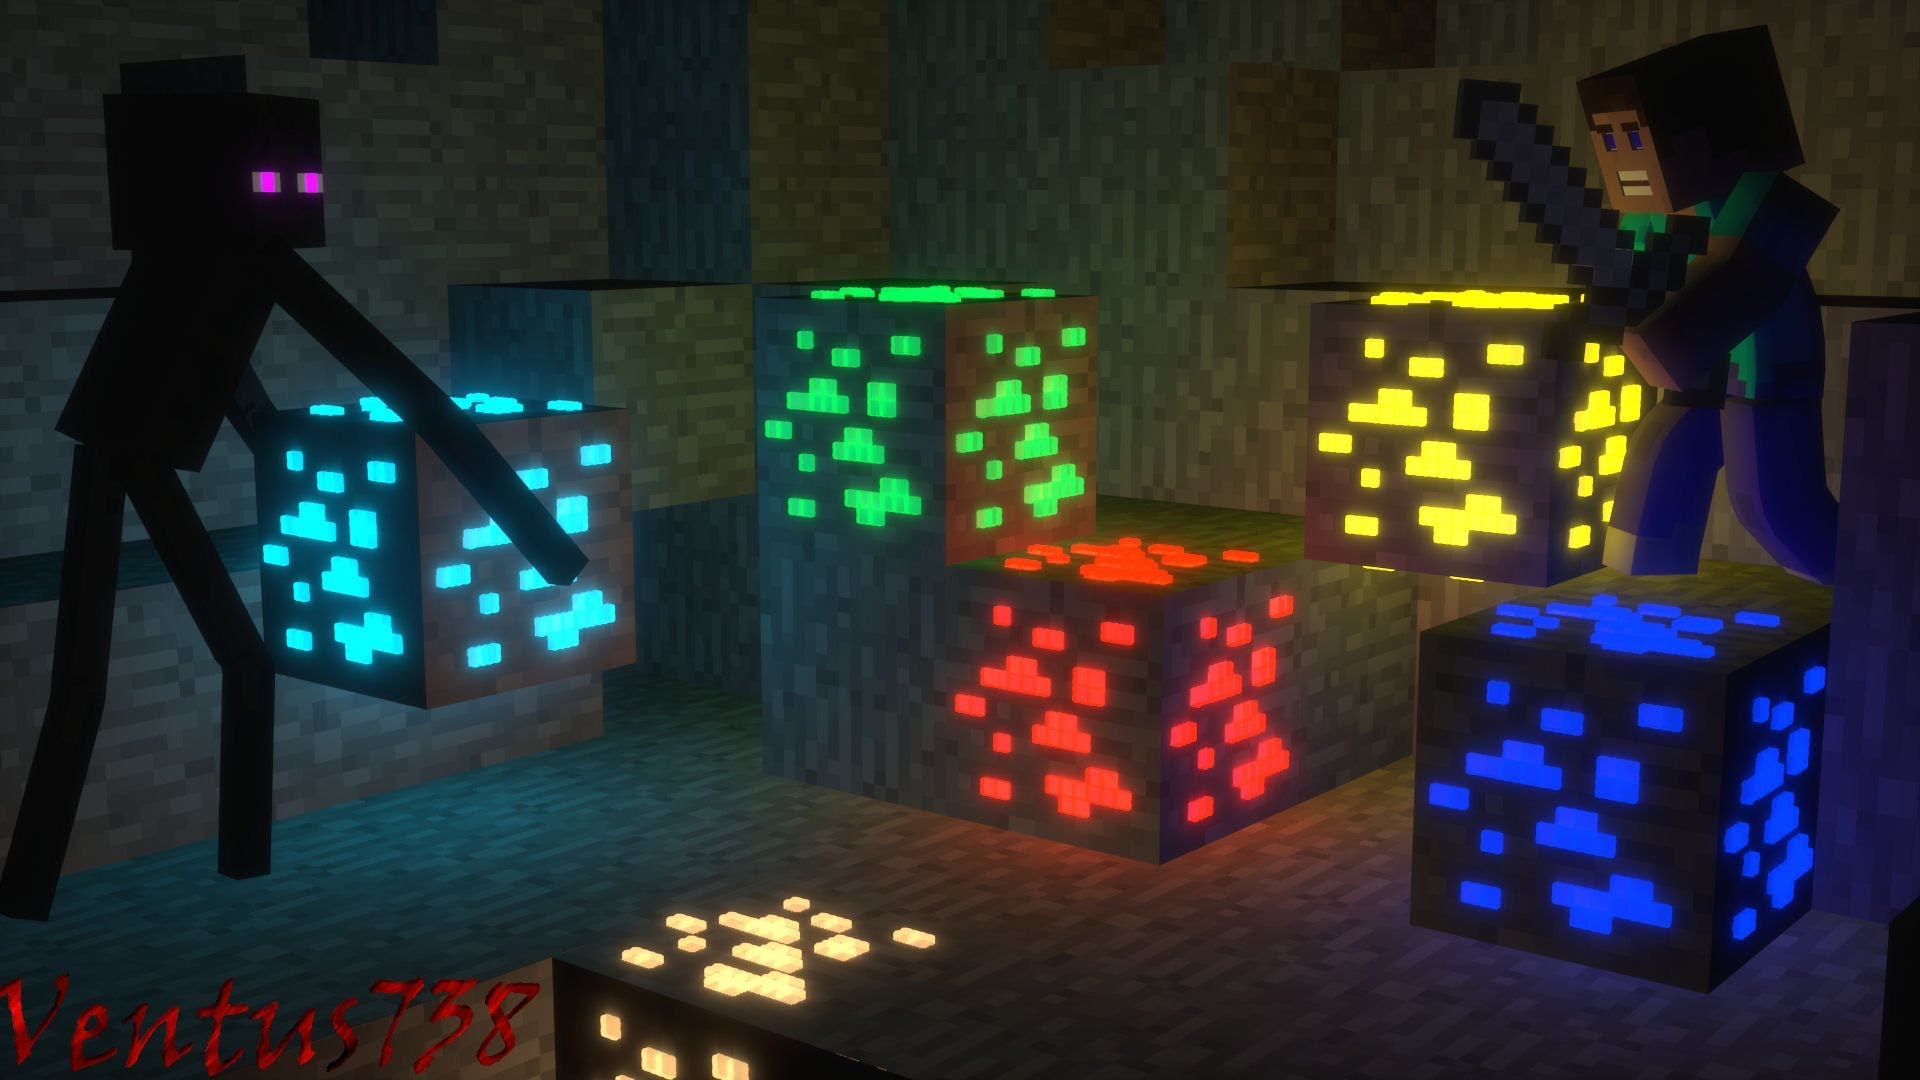 Image gallery for minecraft animation wallpaper maker 1920x1080